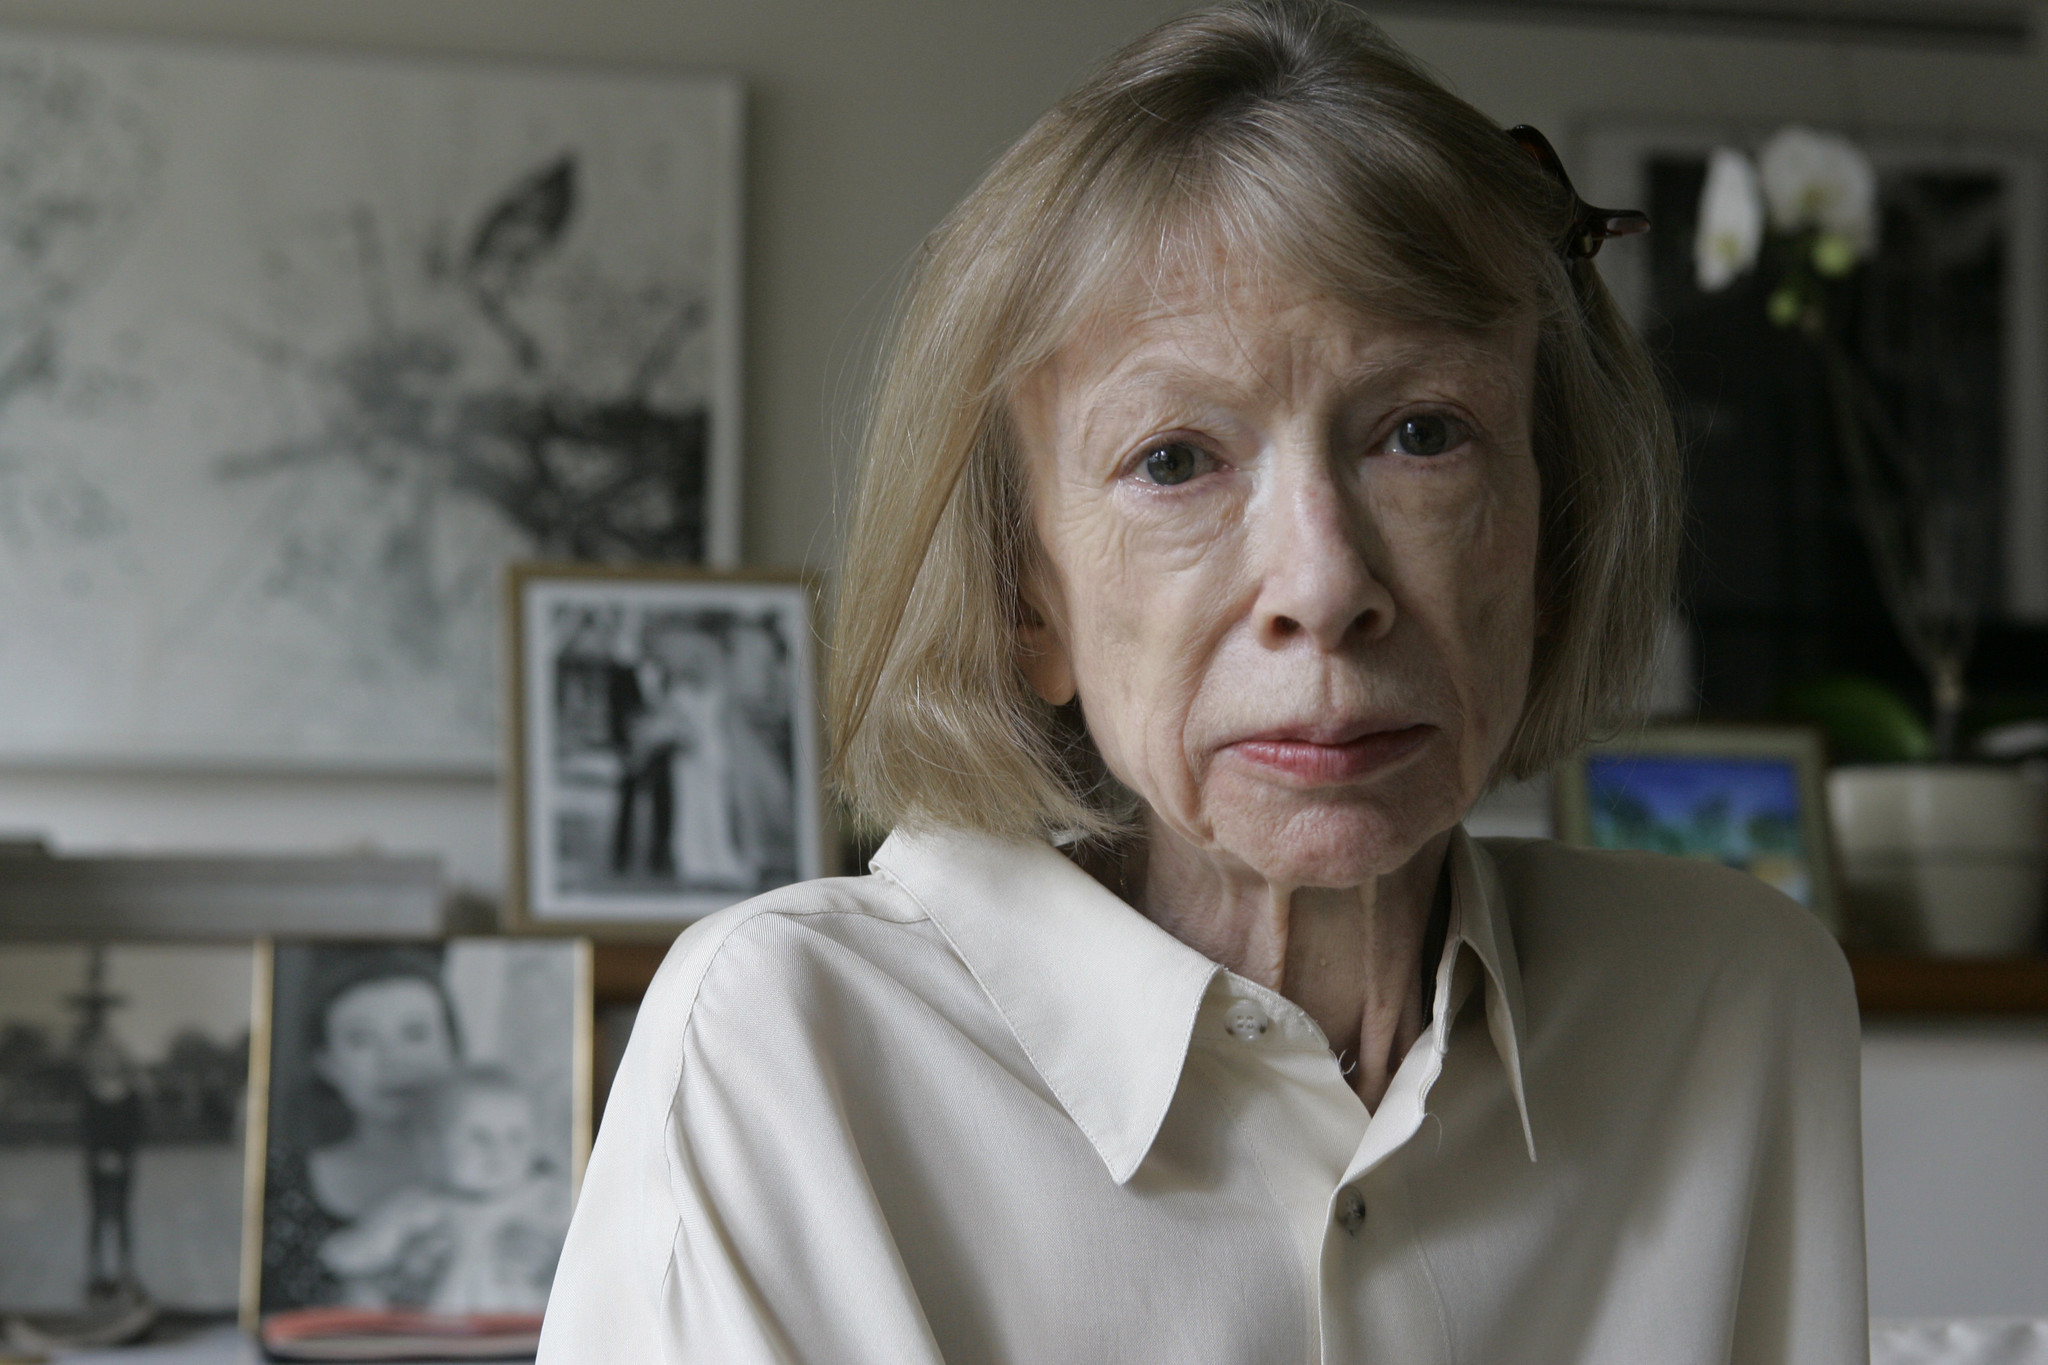 Joan Didion's 'Blue Nights' to be performed by Vanessa Redgrave